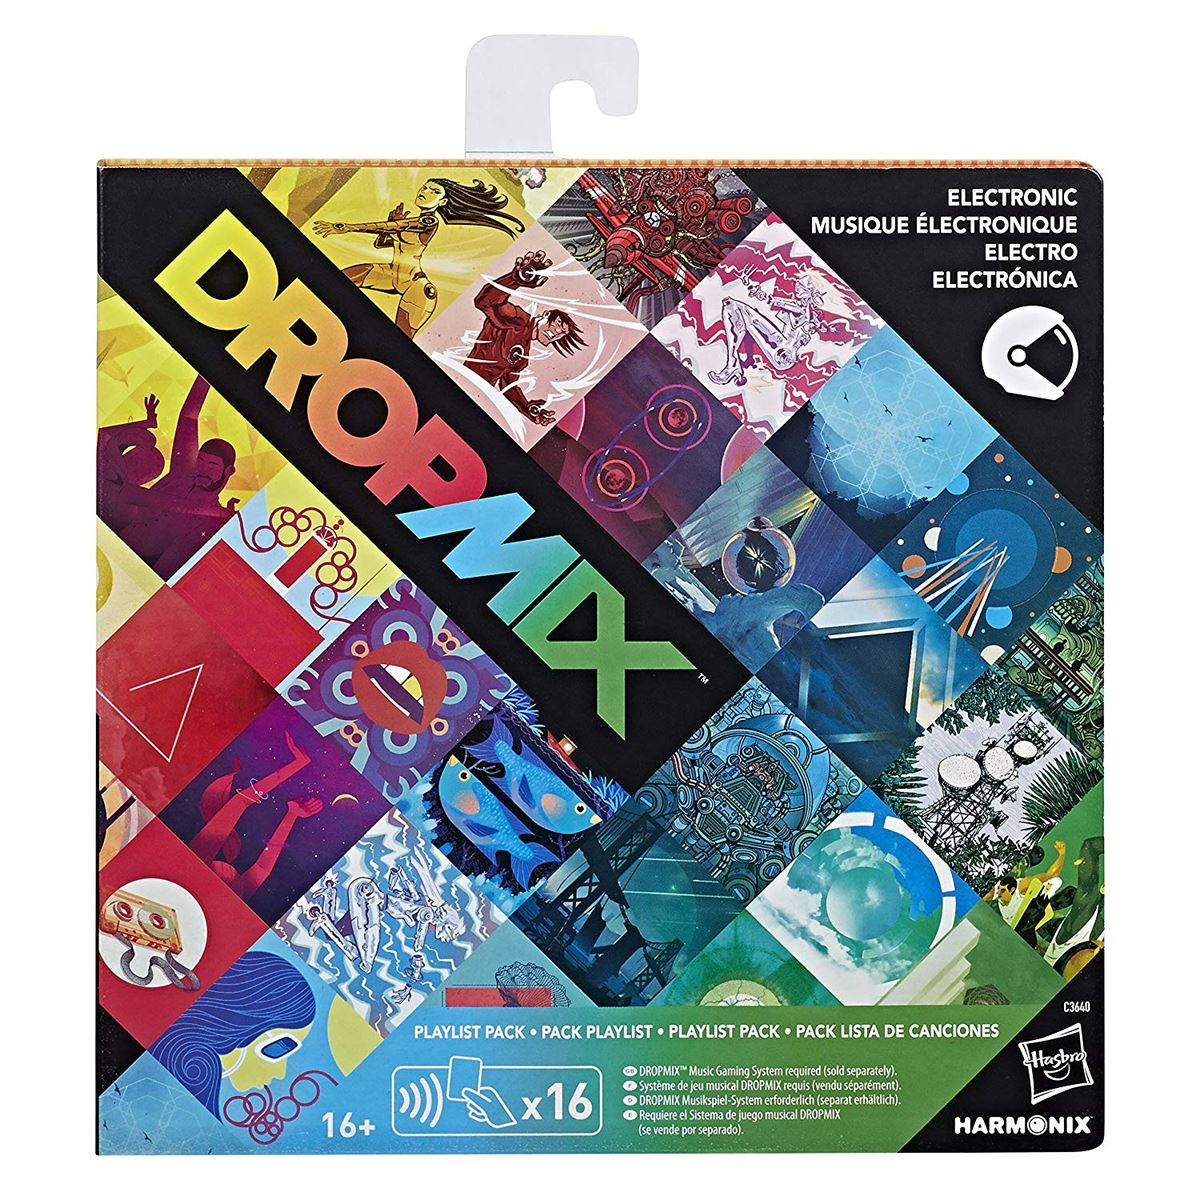 New-Dropmix-Rock-Pop-Hip-Hop-Or-Electronic-Playlist-Card-Pack-Hasbro-Official miniatuur 5